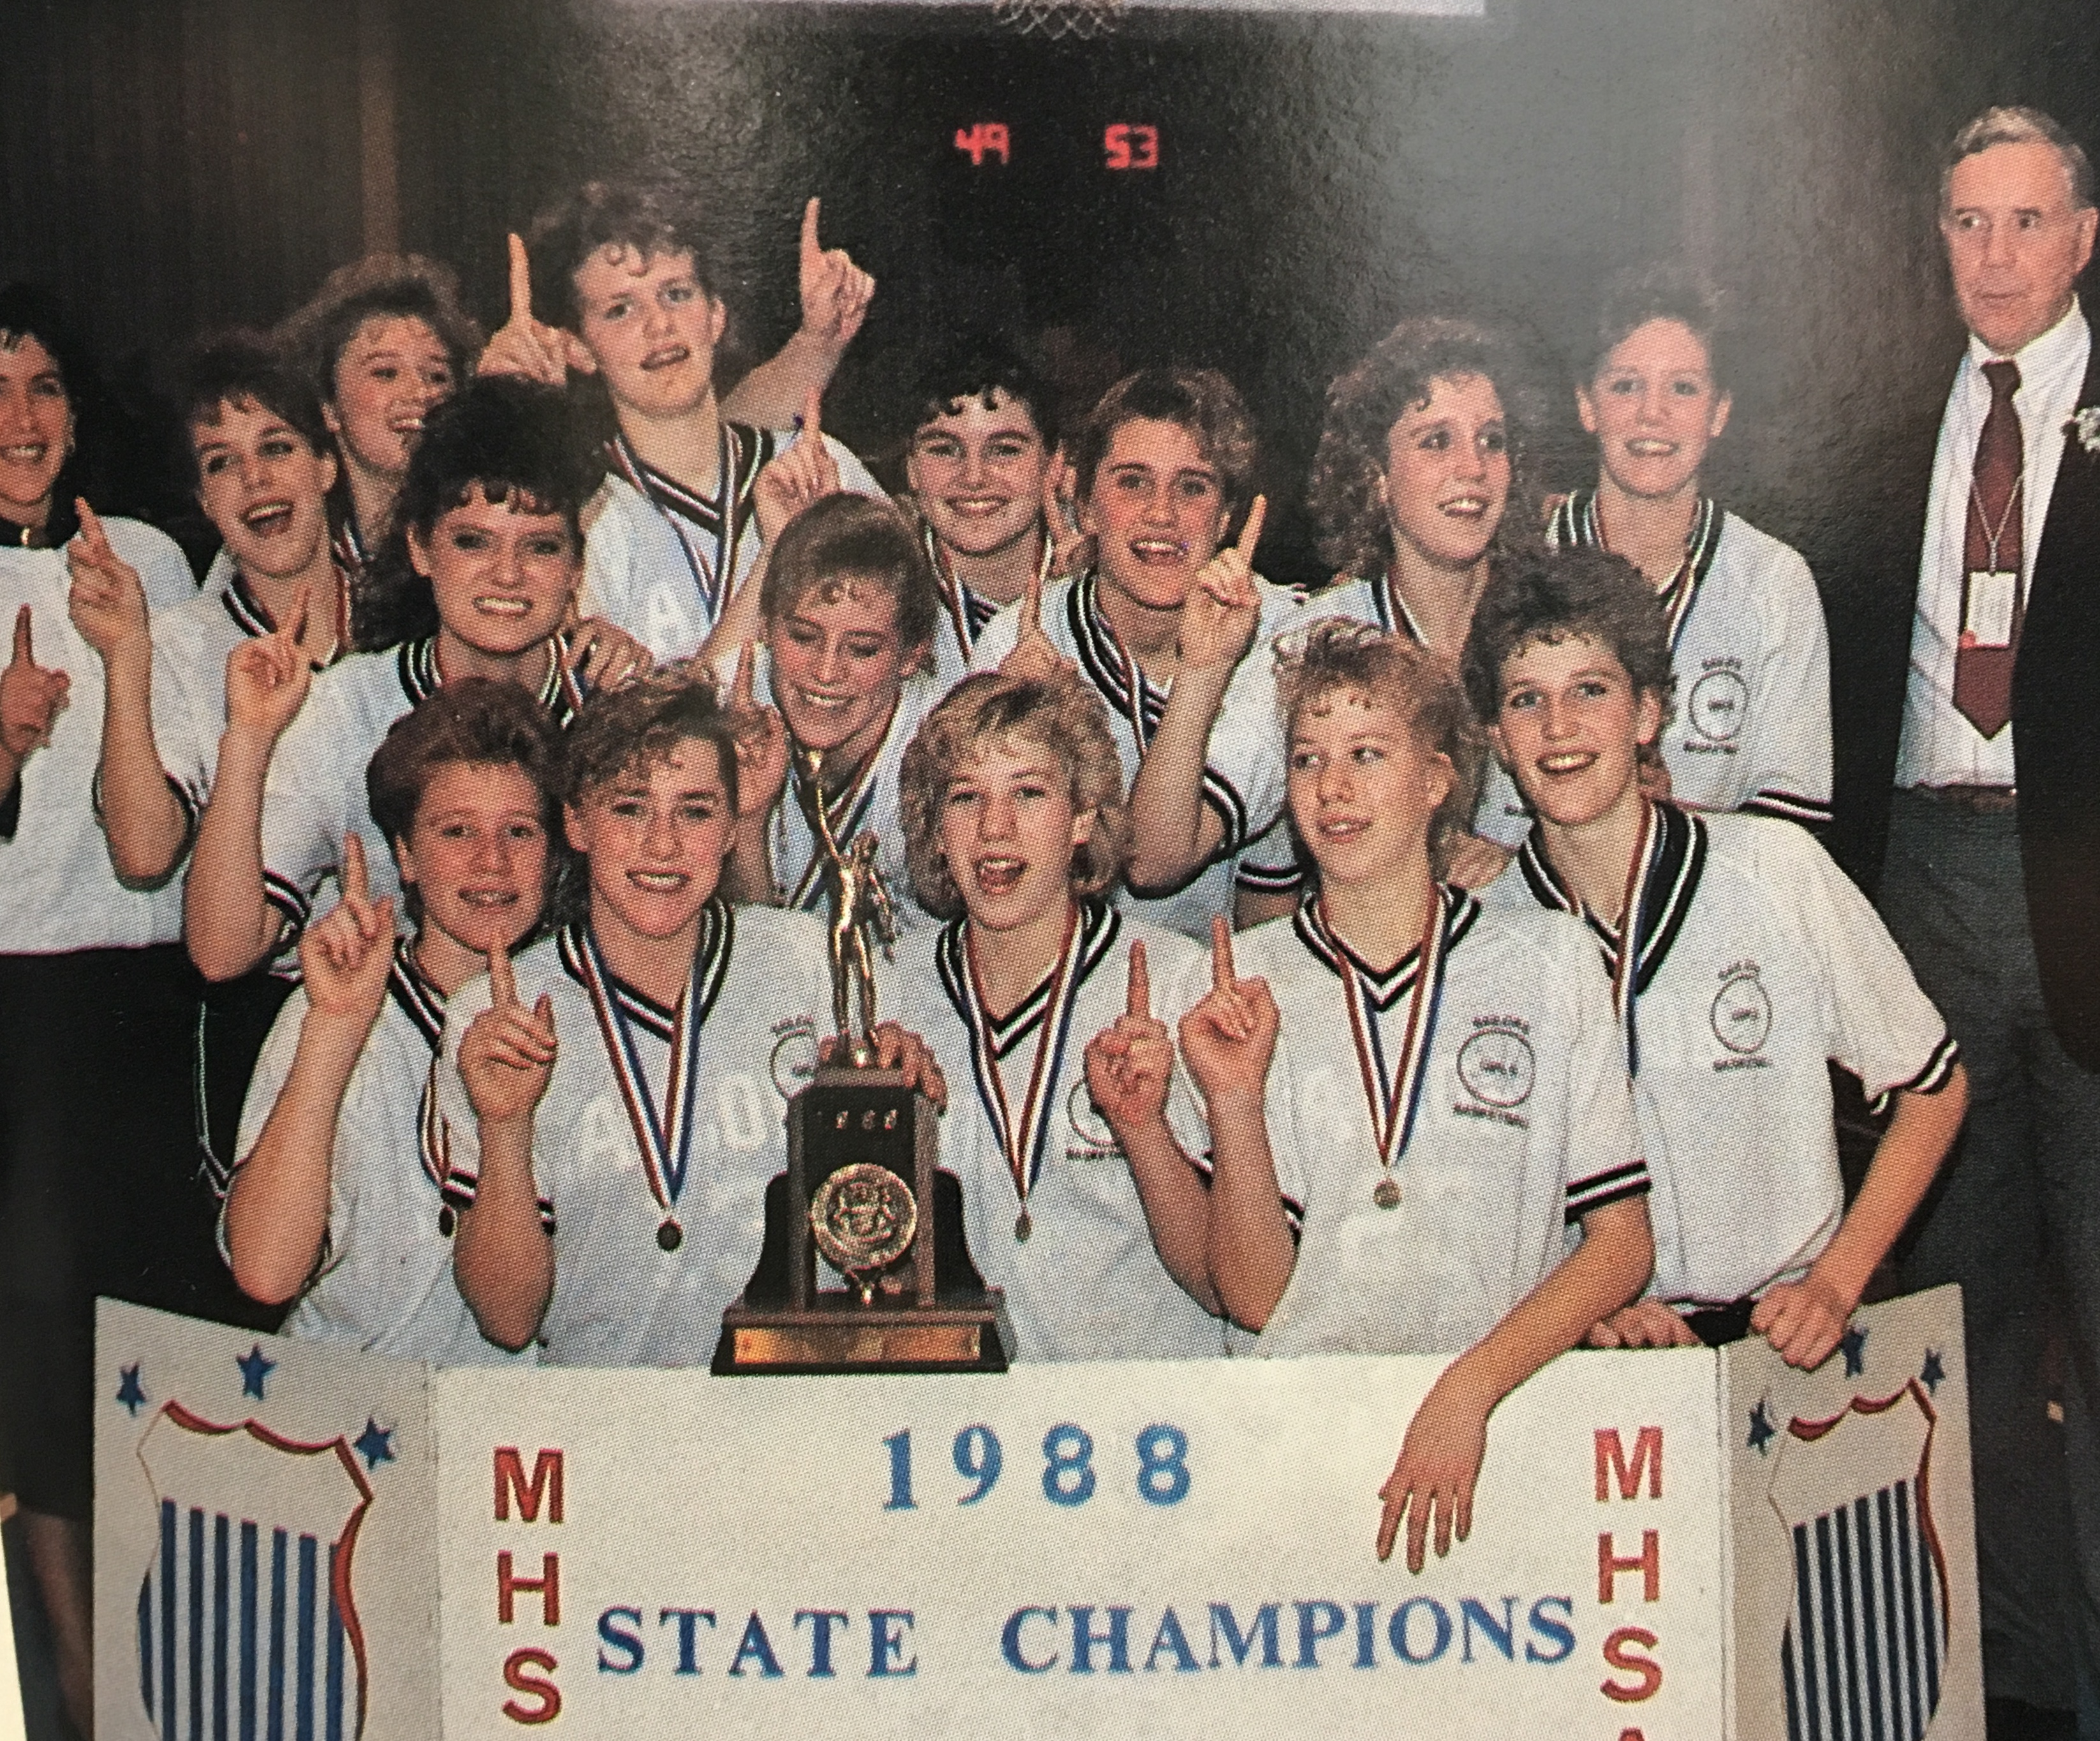 MHSAA's Legends of the Game to honor South Christian's 1988 girls state basketball team